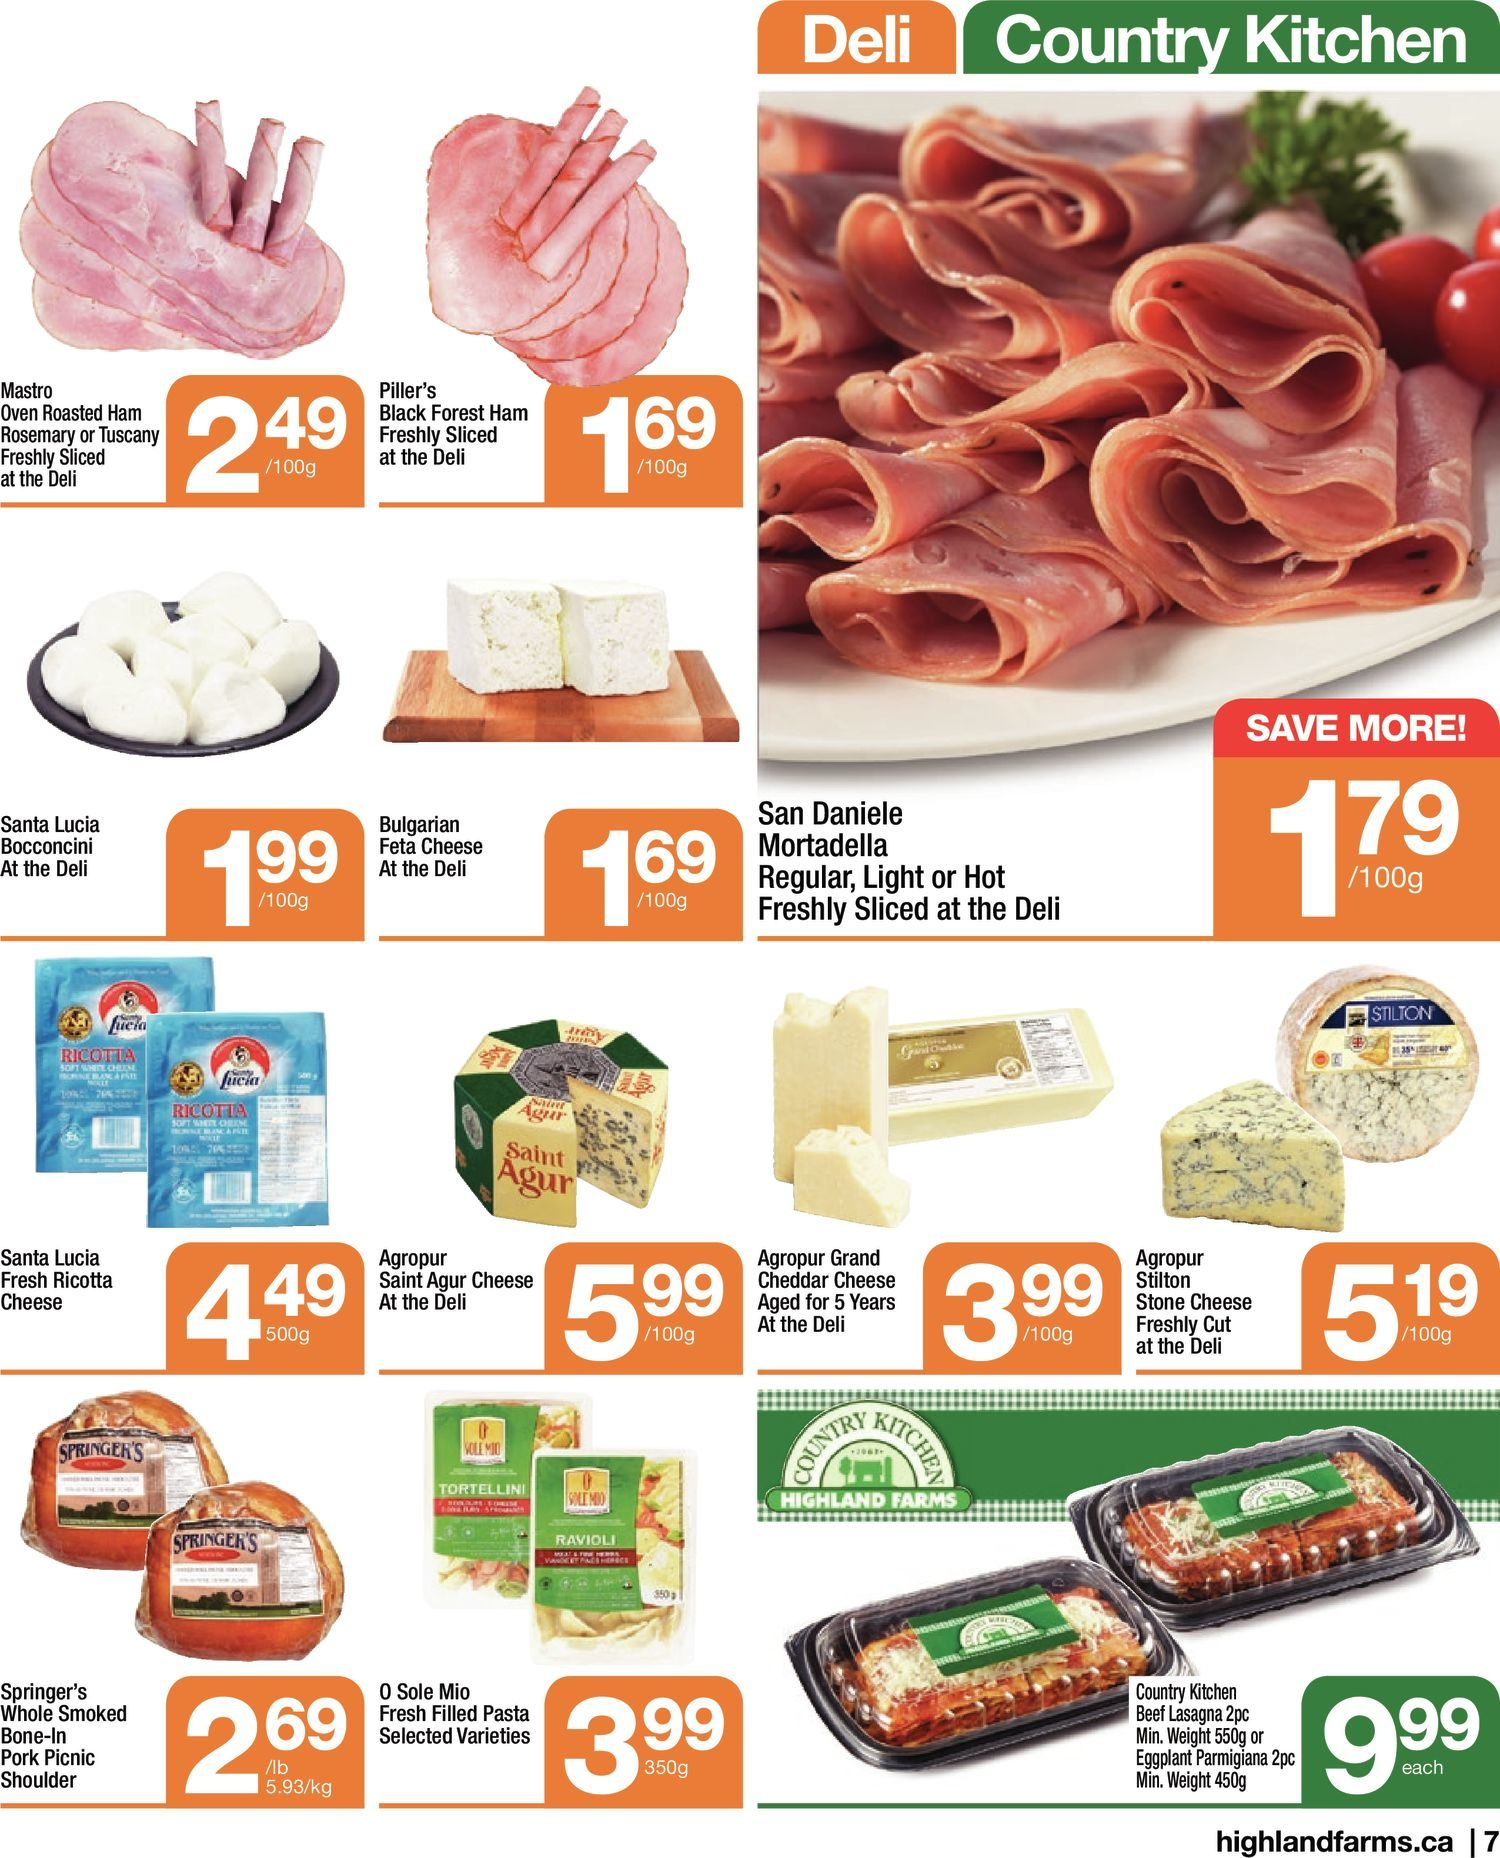 Highland Farms - Weekly Flyer Specials - Start Fresh - Page 7